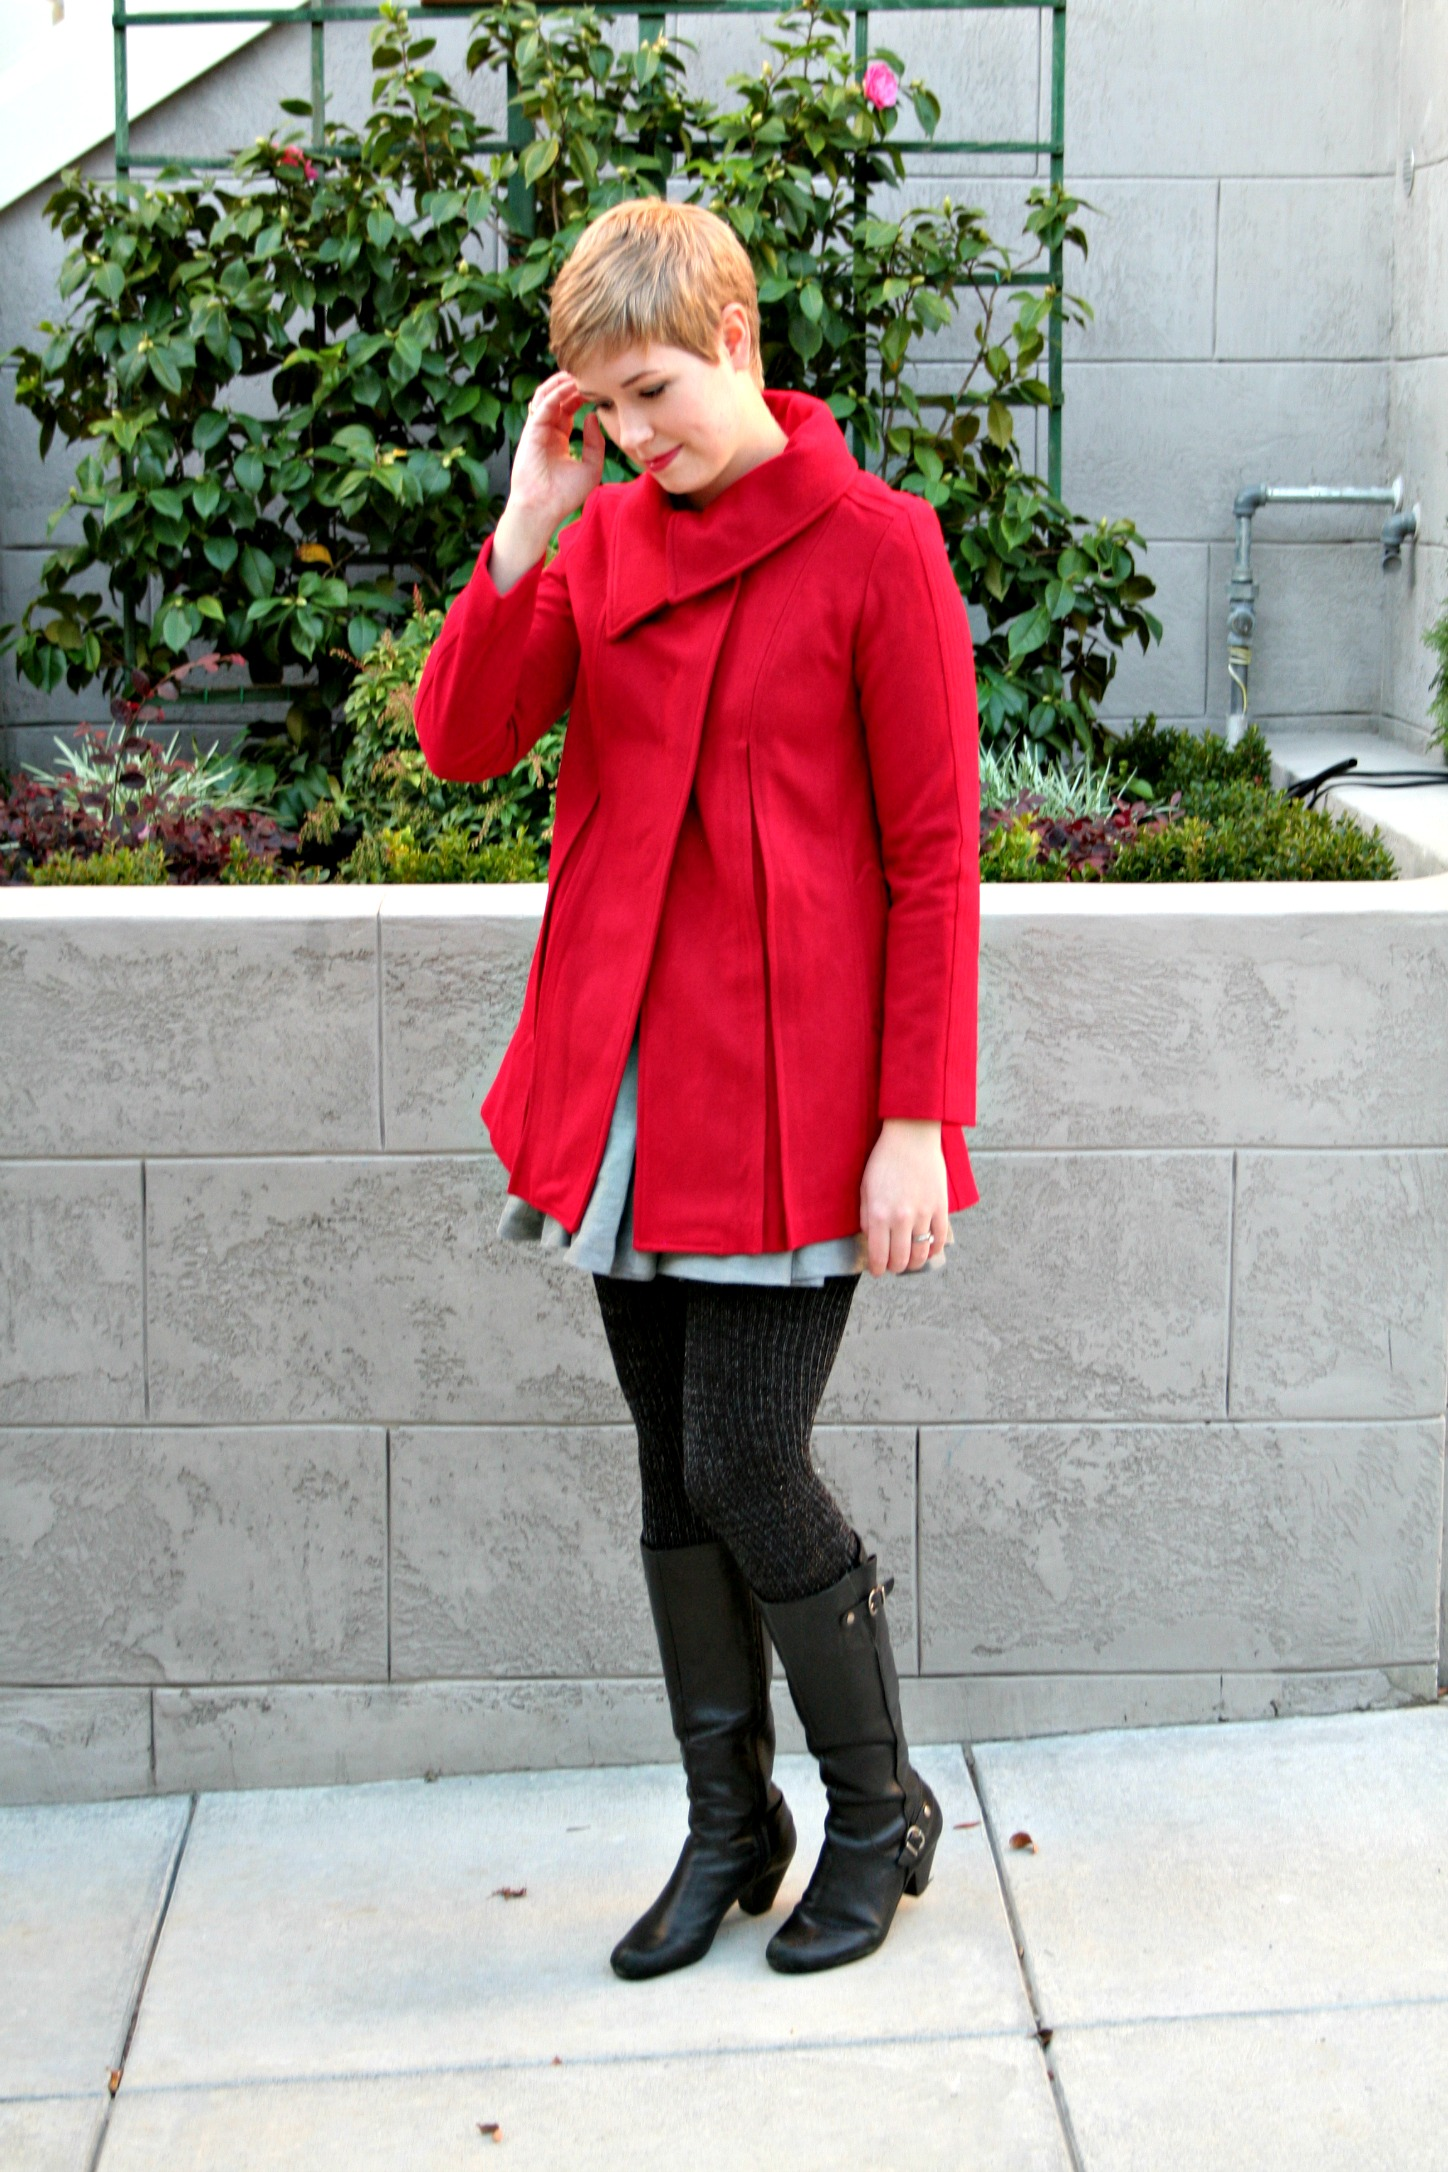 Modcloth coat with shimmer tights and black boots